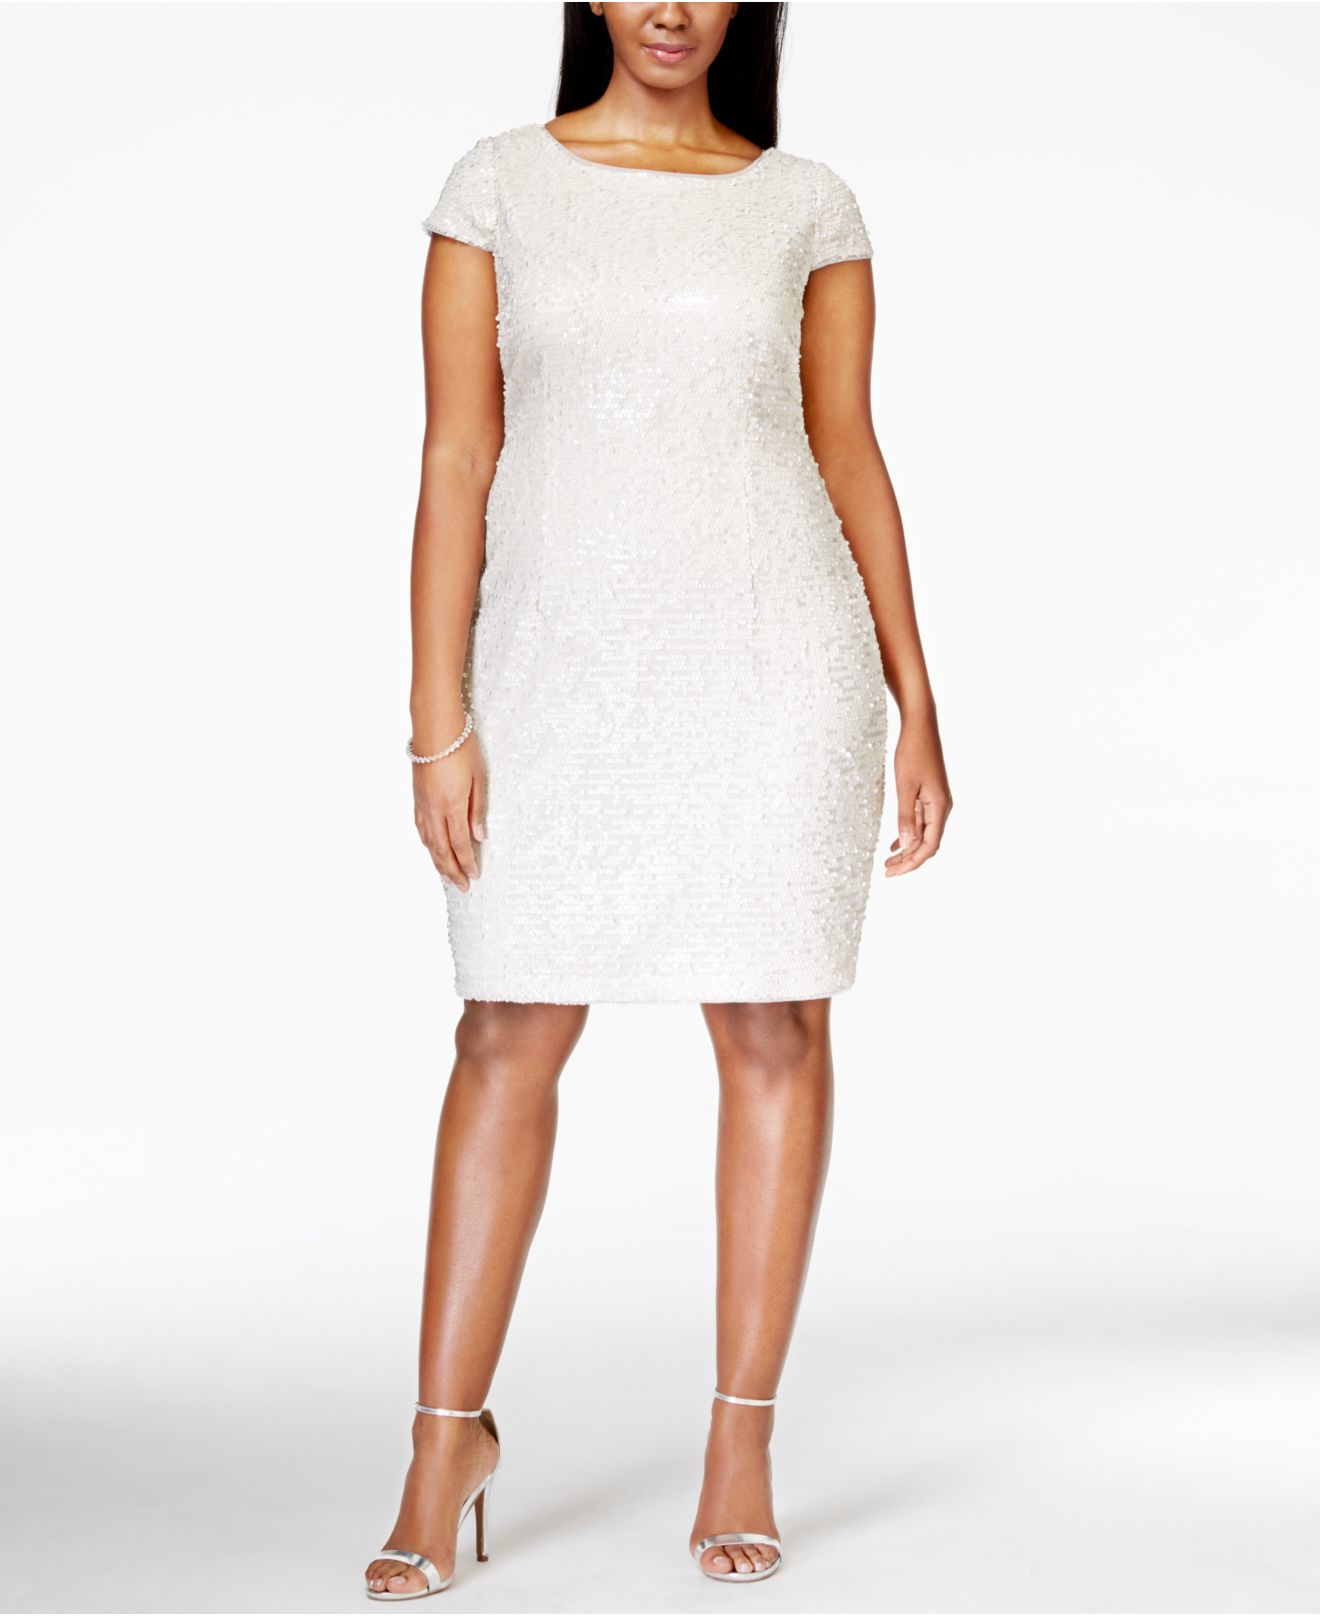 Adrianna Papell Plus Size Short-sleeve Sequin Dress in White - Lyst